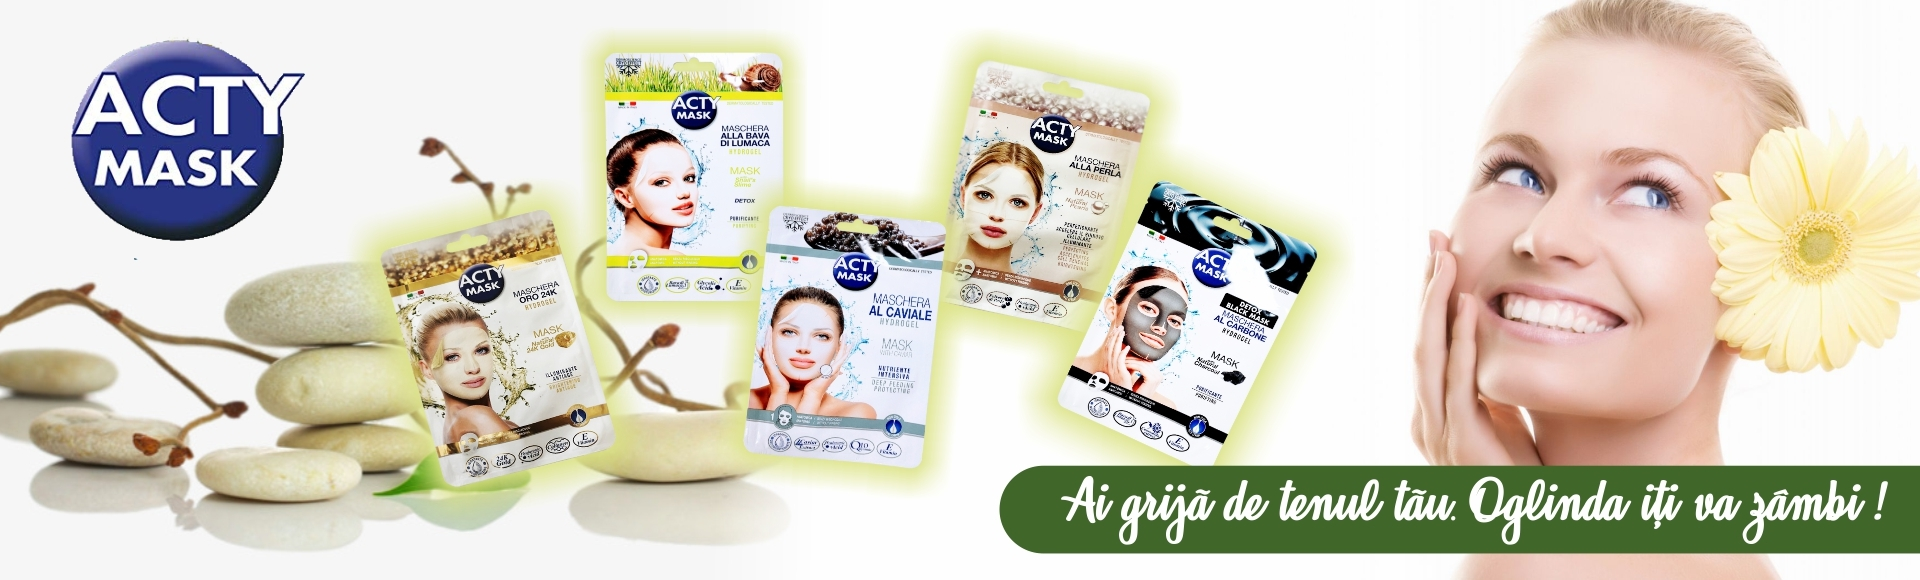 PRODUSE ACTY MASK